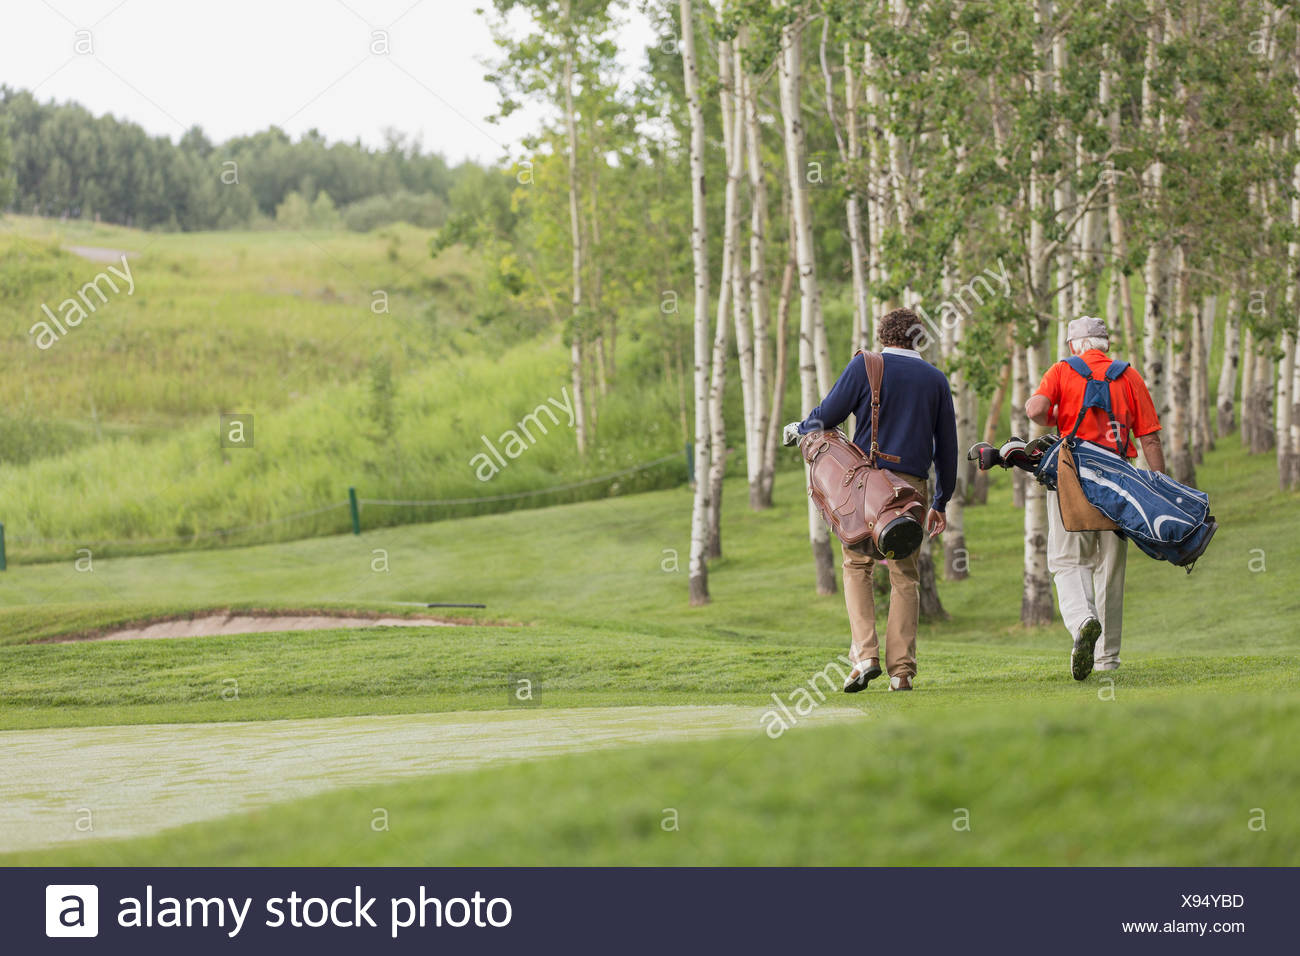 view from behind of golfers walking off tee - Stock Image